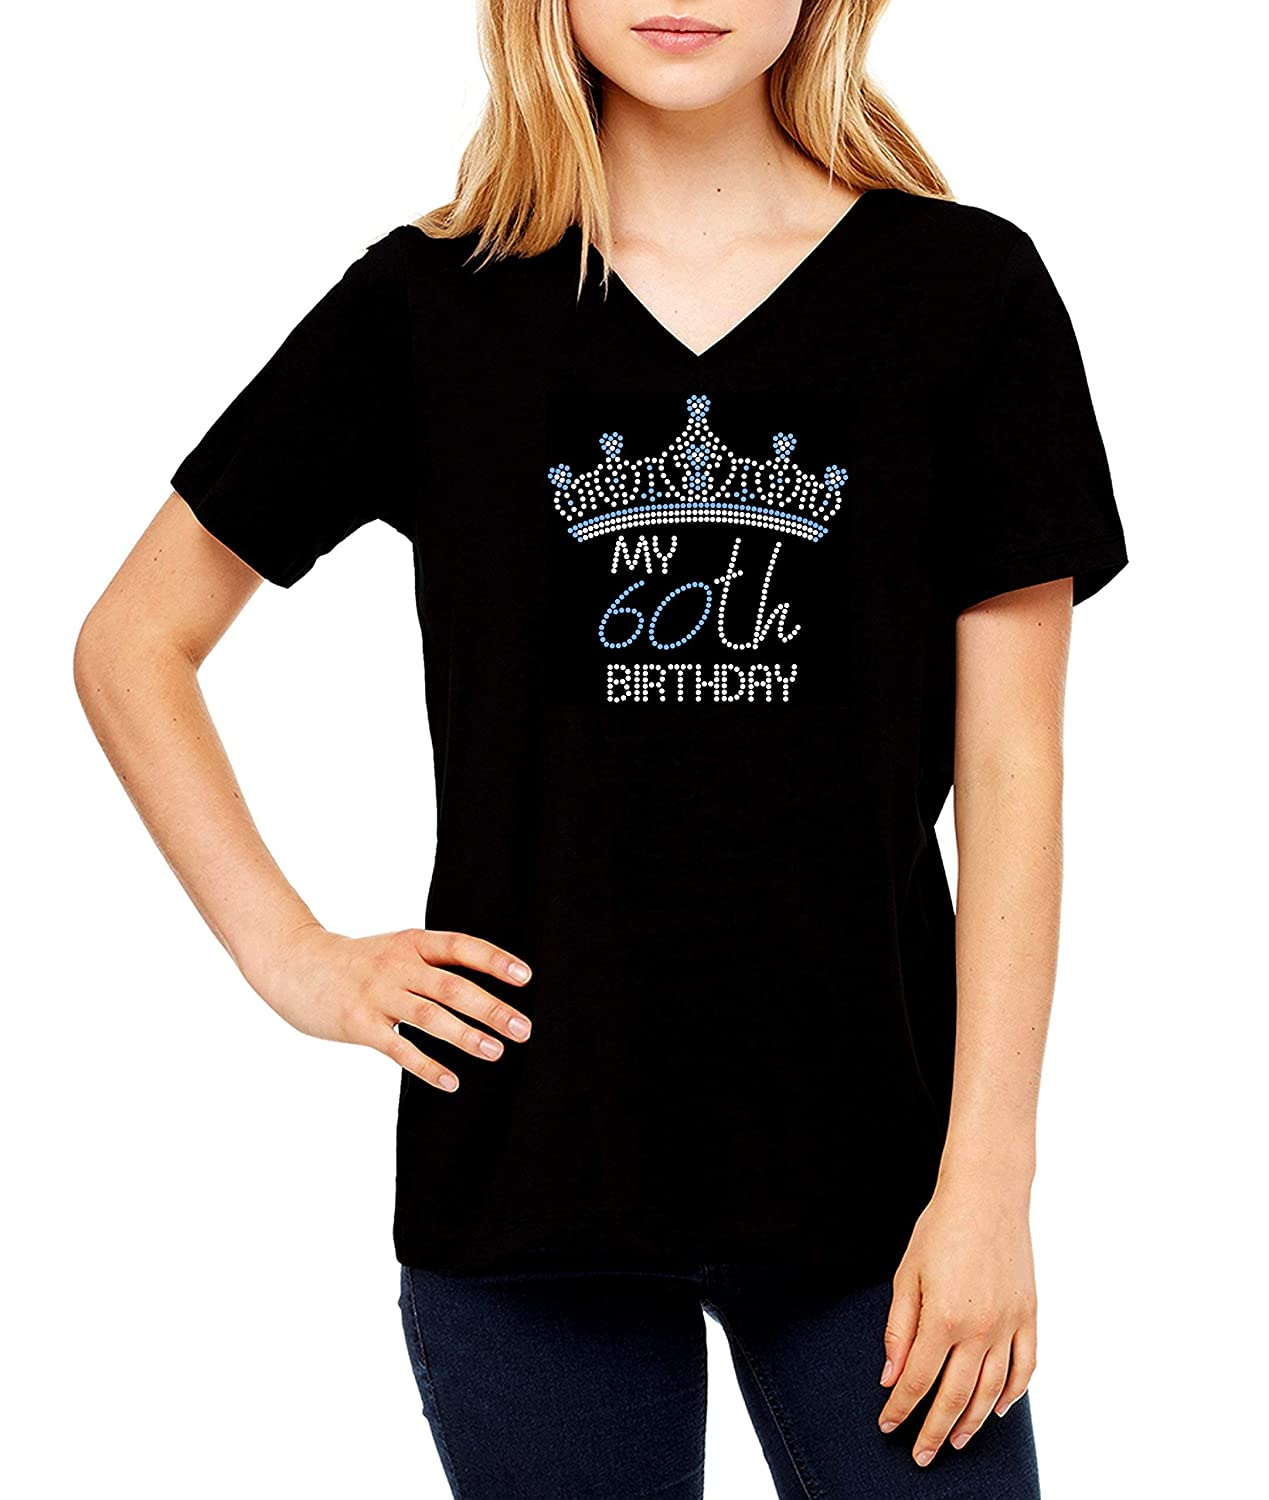 Specify Age and Pick Rhinestone Color 60th 61st 62nd 63rd 64th 65th 66th 67th 68th 69th 60 61 62 63 64 65 66 67 68 69 Scoop V-Neck Crew My 60th Birthday Crown Tiara RHINESTONE T-Shirt Shirt Bling